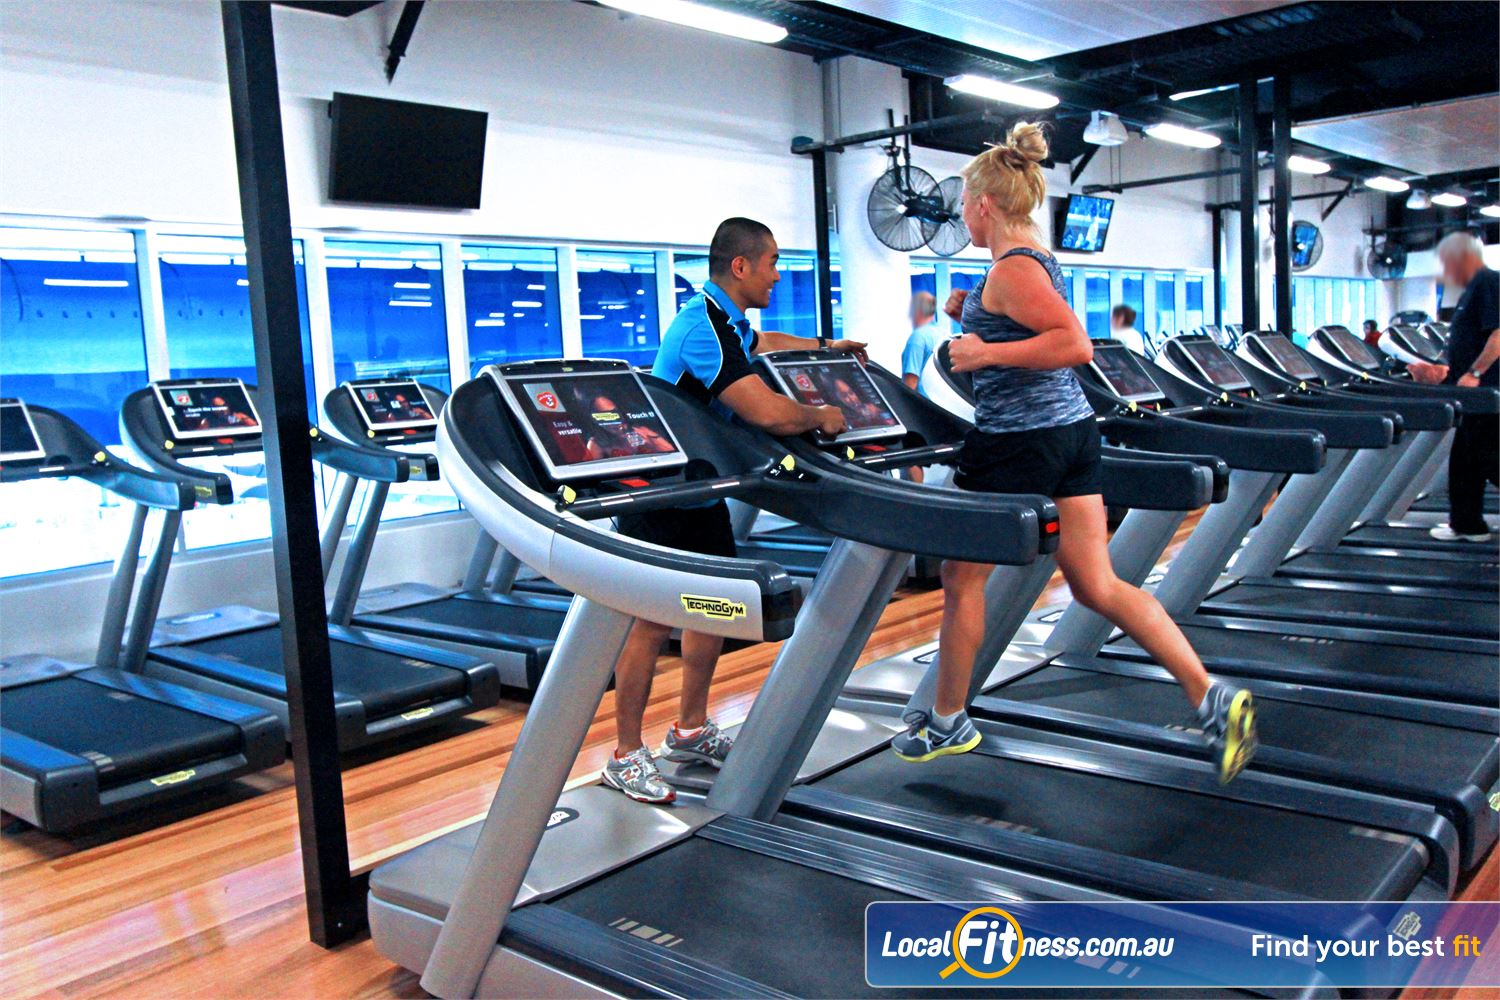 WaterMarc Aquatic & Leisure Centre Near Saint Helena The latest cardio with personal screens, web access, usb and more.